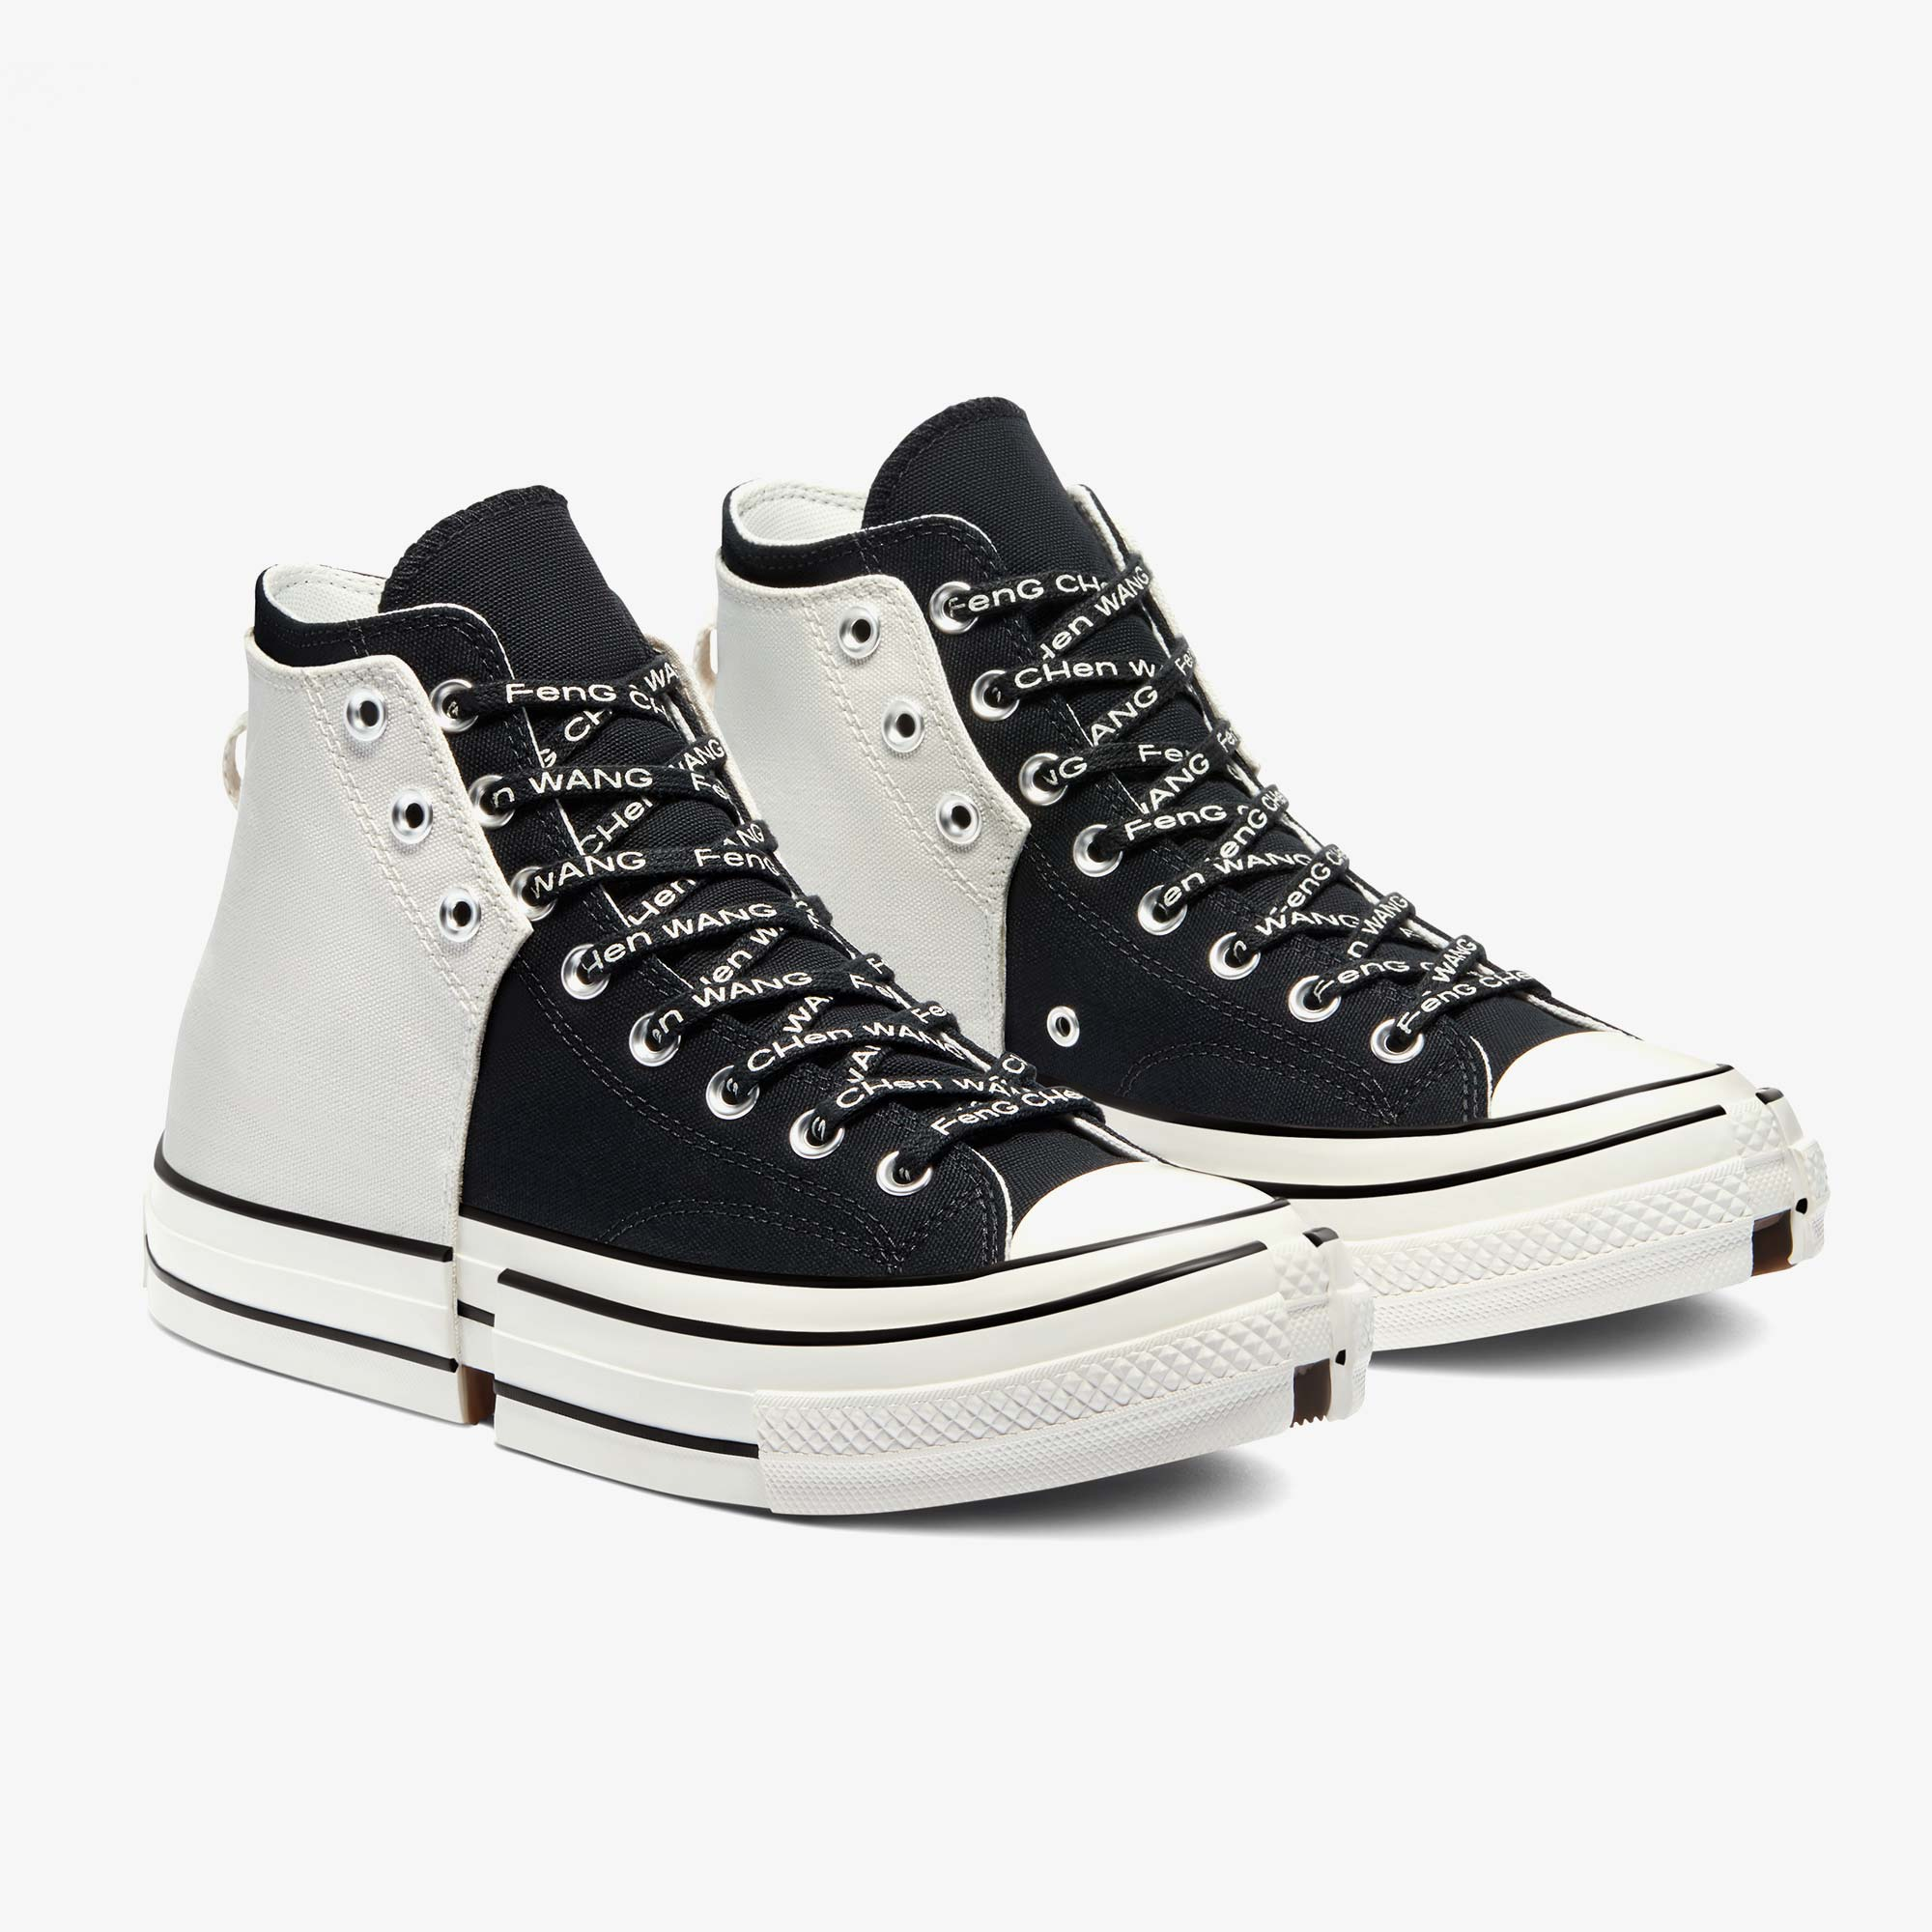 Converse Converse x Feng Chen Wang 2 In 1 Chuck Taylor 70 Hi - Ivory 1